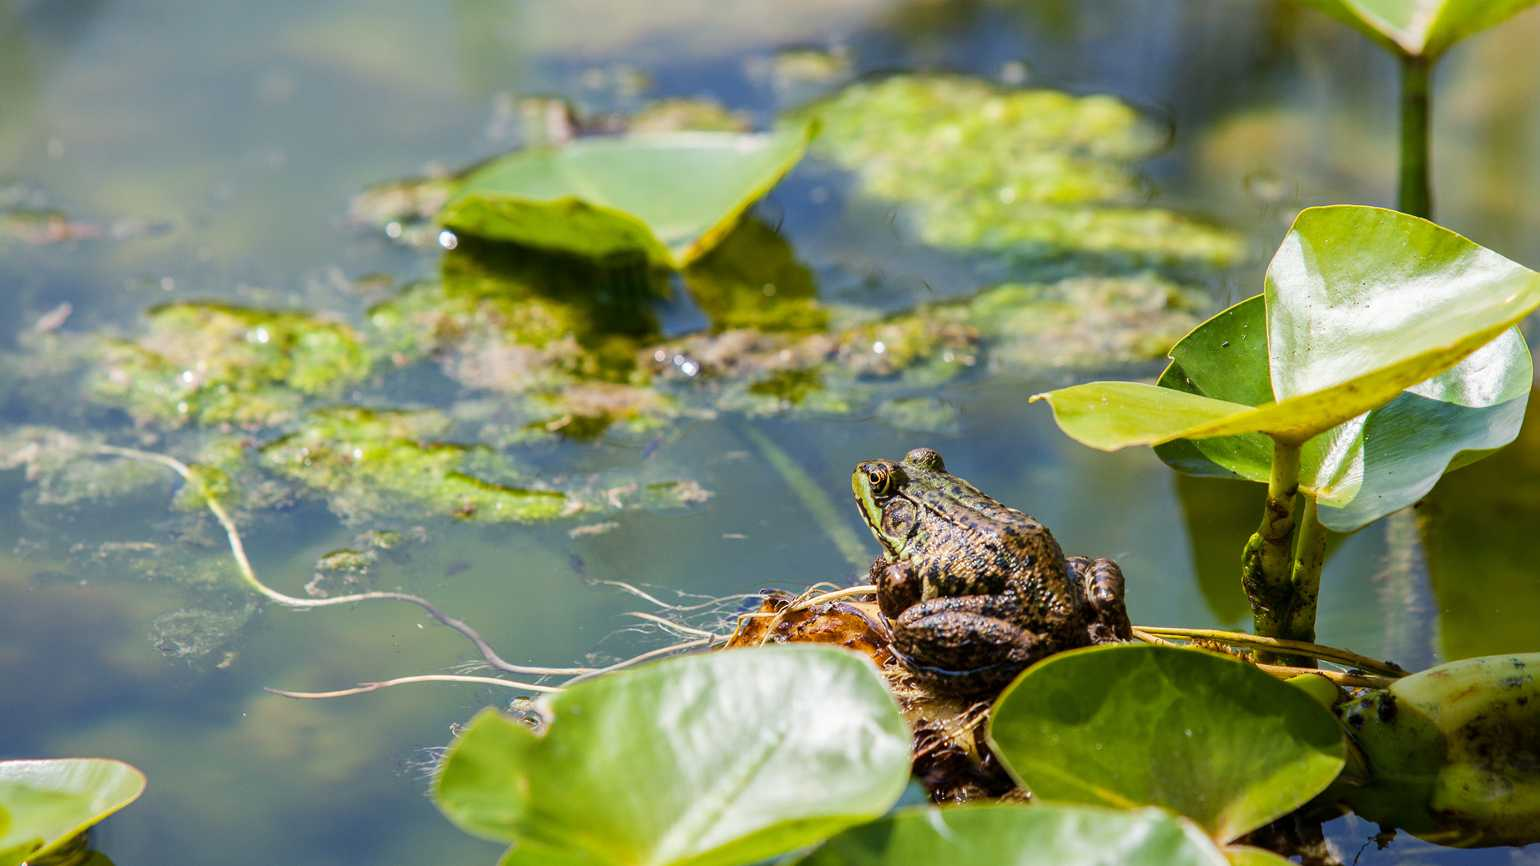 A frog on a lily pad in a pond.